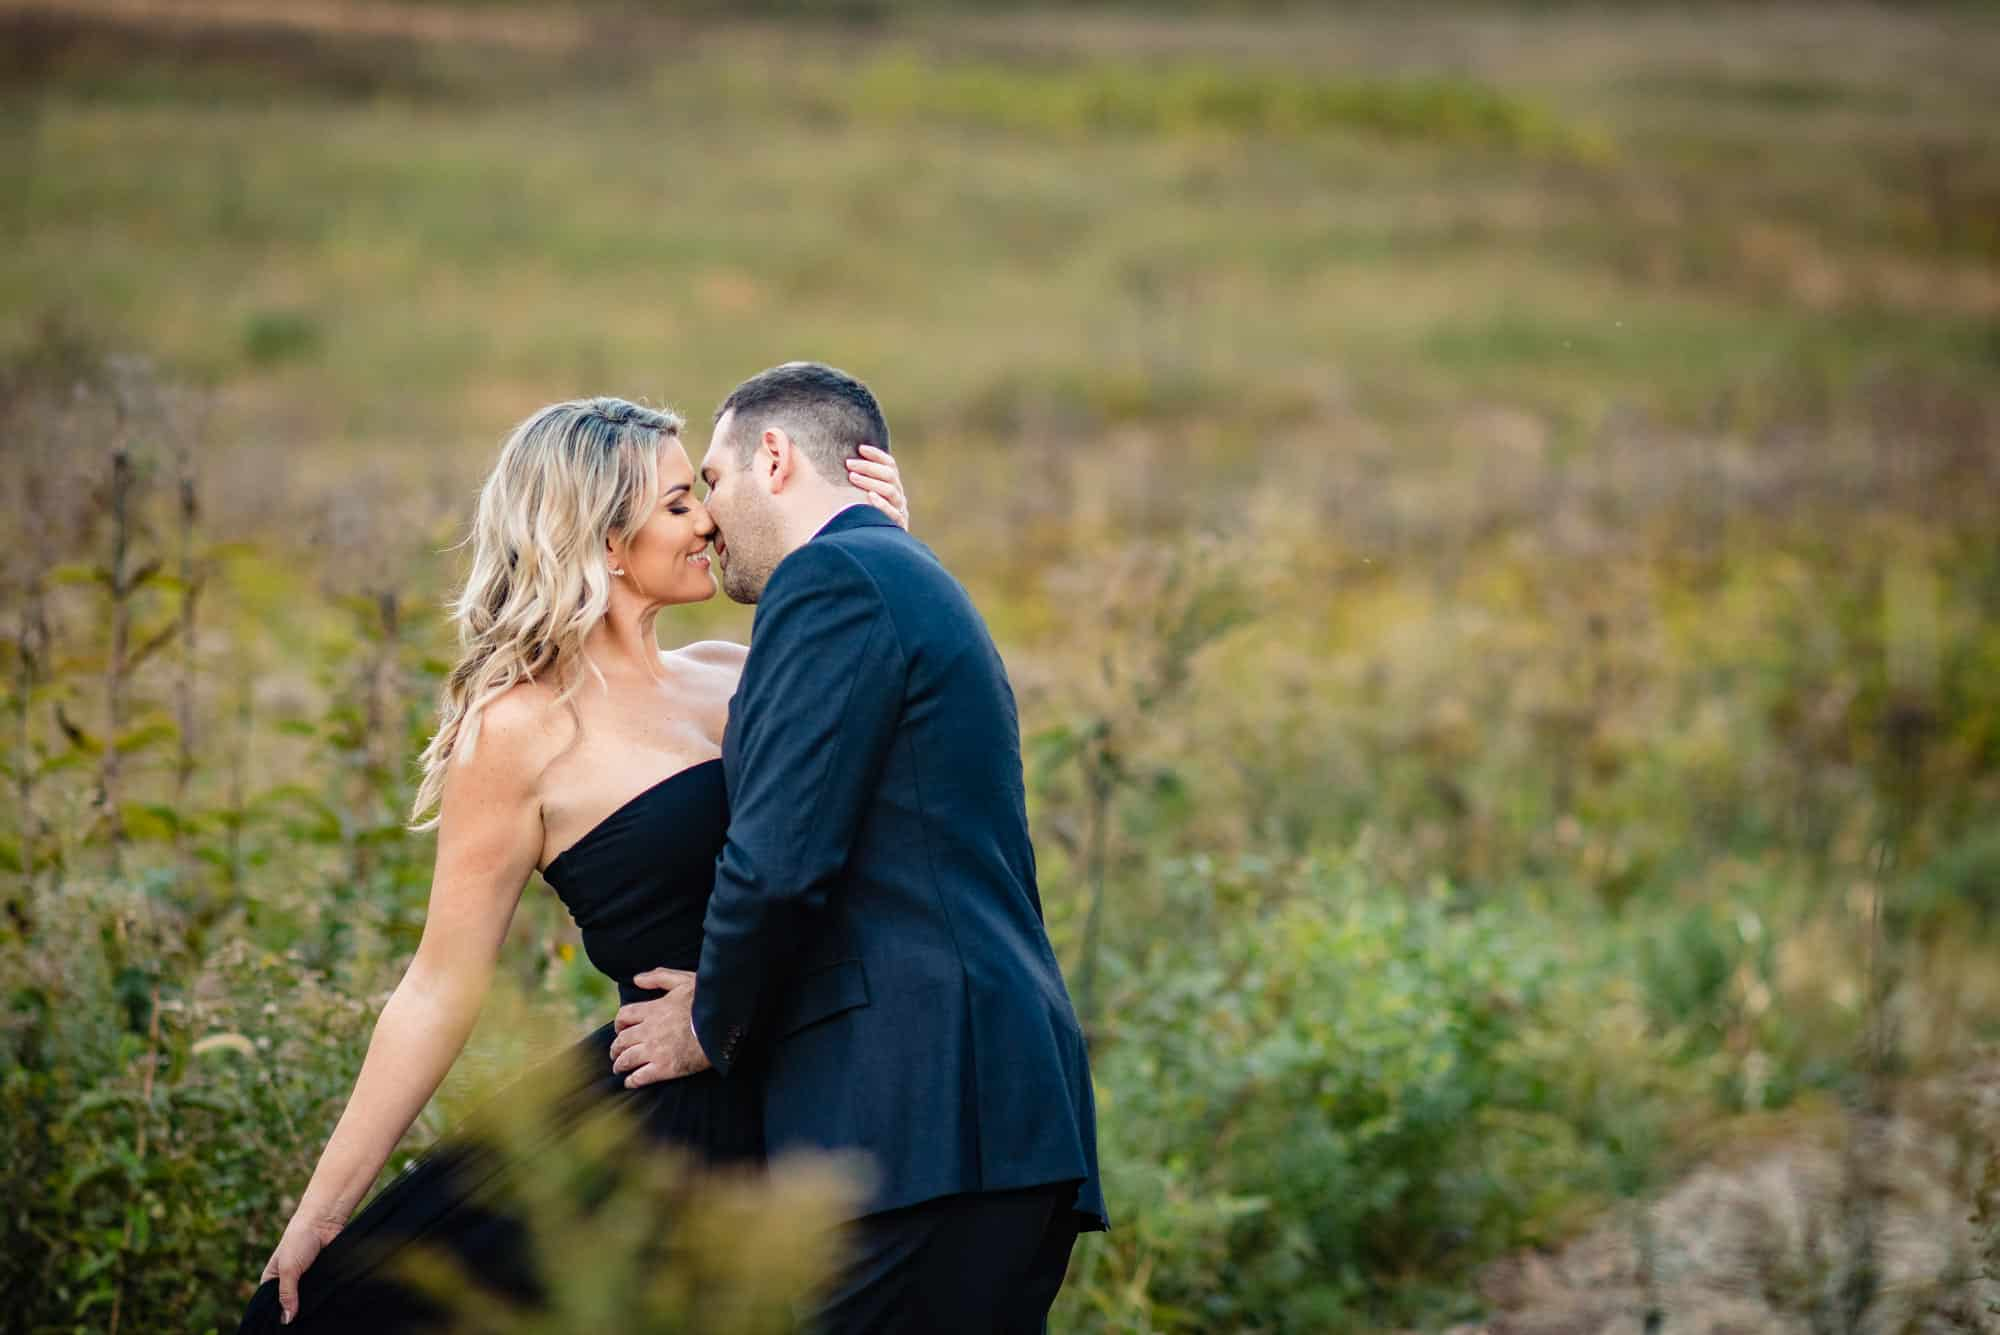 Outdoor Engagement photo by Ralph Deal Photography